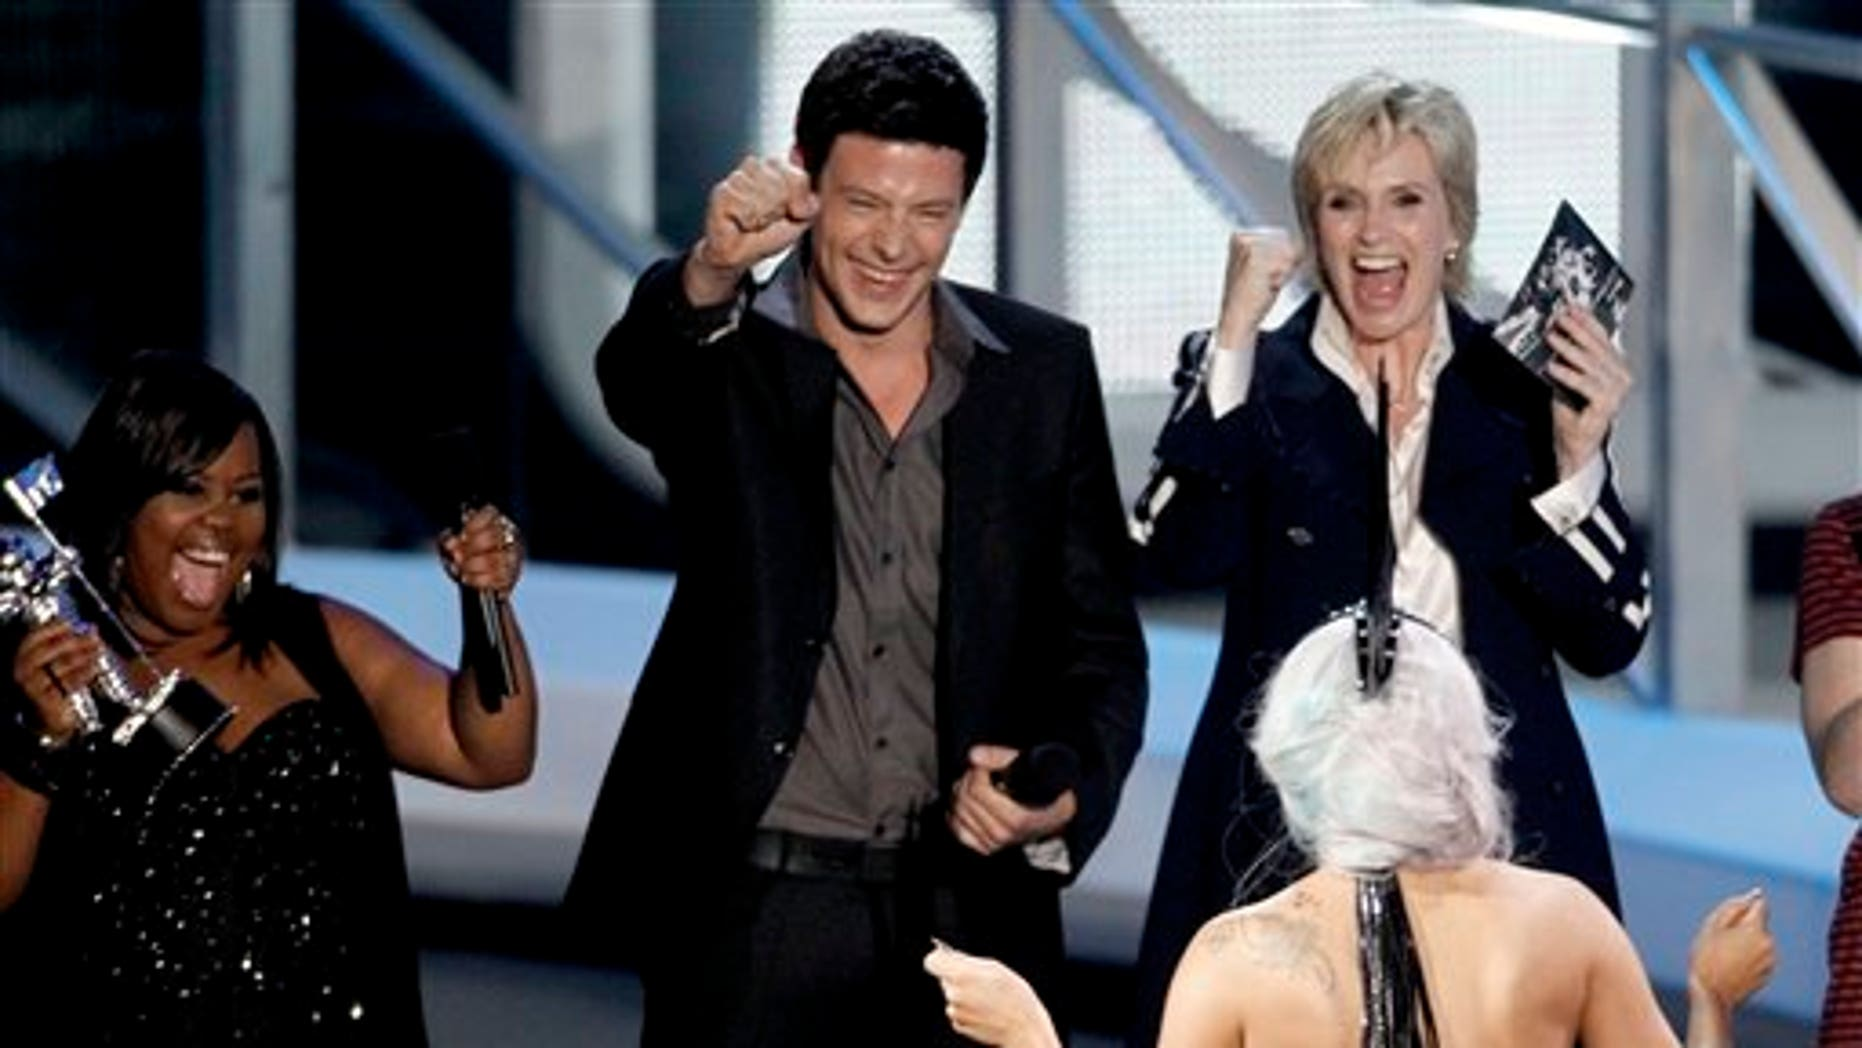 """From left, Amber Riley, Cory Monteith, and Jane Lynch, of the cast of Glee present Lady Gaga with the award for best pop video for """"Bad Romance"""" at the MTV Video Music Awards on Sunday, Sept. 12, 2010 in Los Angeles. (AP Photo/Matt Sayles)"""